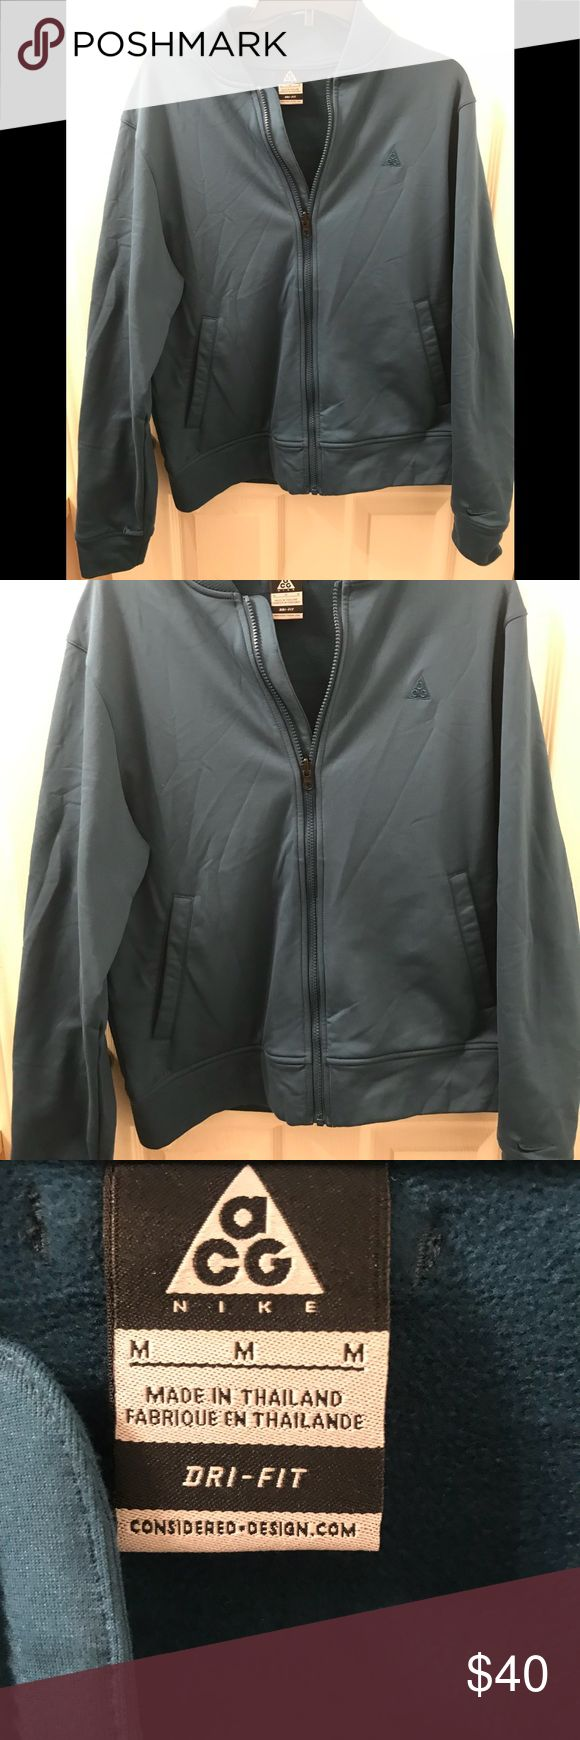 Nike ACG DRI-Fit teal Women's Jacket EUC Medium Women's Nike ACG DriFit teal green athletic jacket. Like new with no holes, rips or stains! 🍁☕️ Nike ACG Jackets & Coats